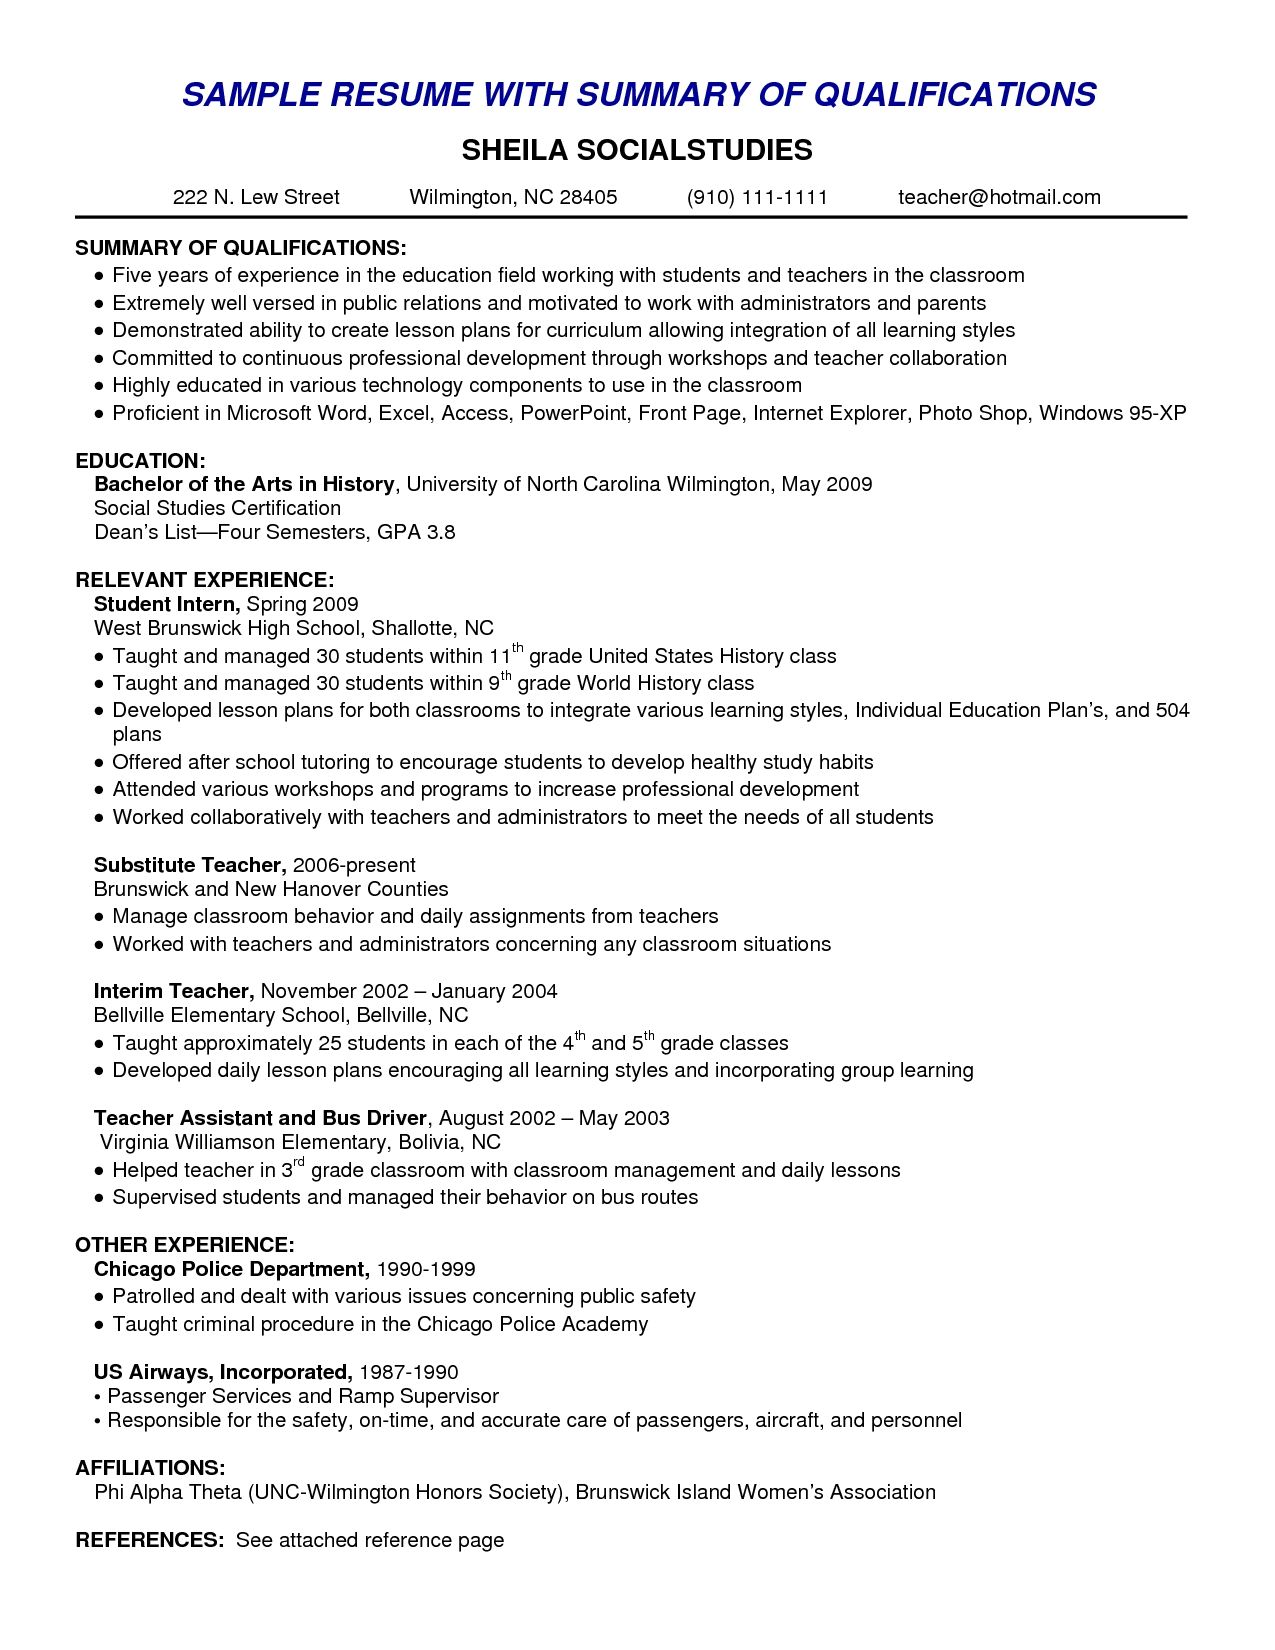 Captivating Resume Skills Summary Examples Example Of Skills Summary For Resume Amusing  Summary Of Skills With Summary On A Resume Examples